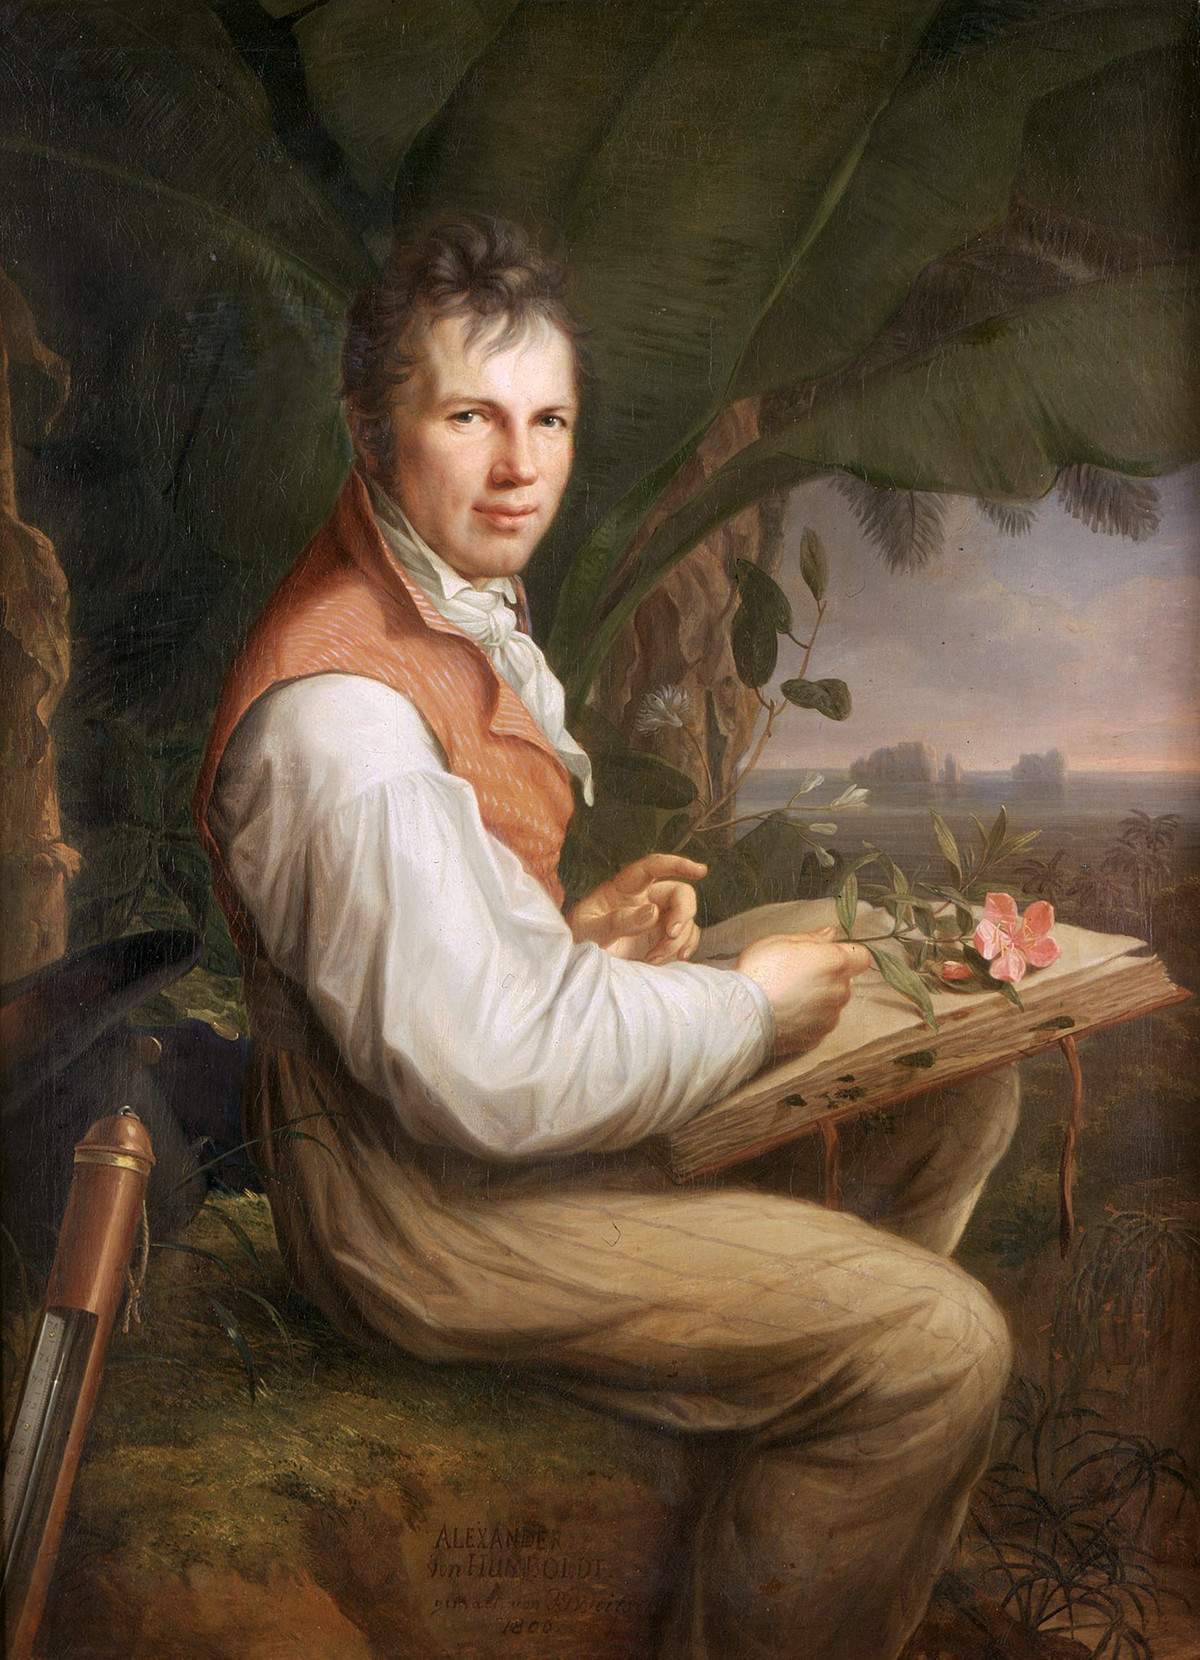 Portrait of scientist Alexander von Humboldt by Friedrich Georg Weitsch, 1806